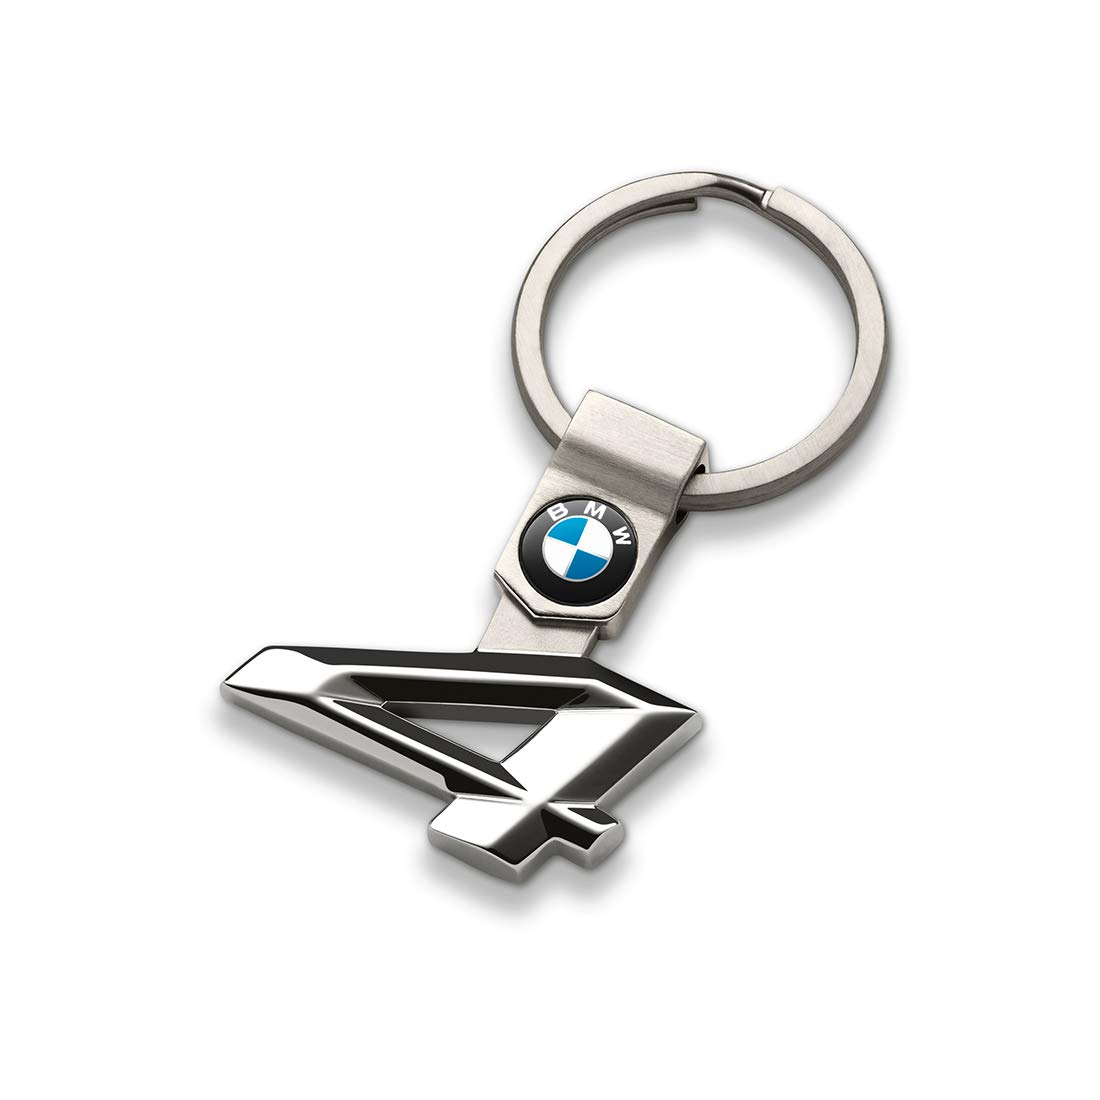 Key Fob Genuine BMW 4er, 80272354146 80272454650